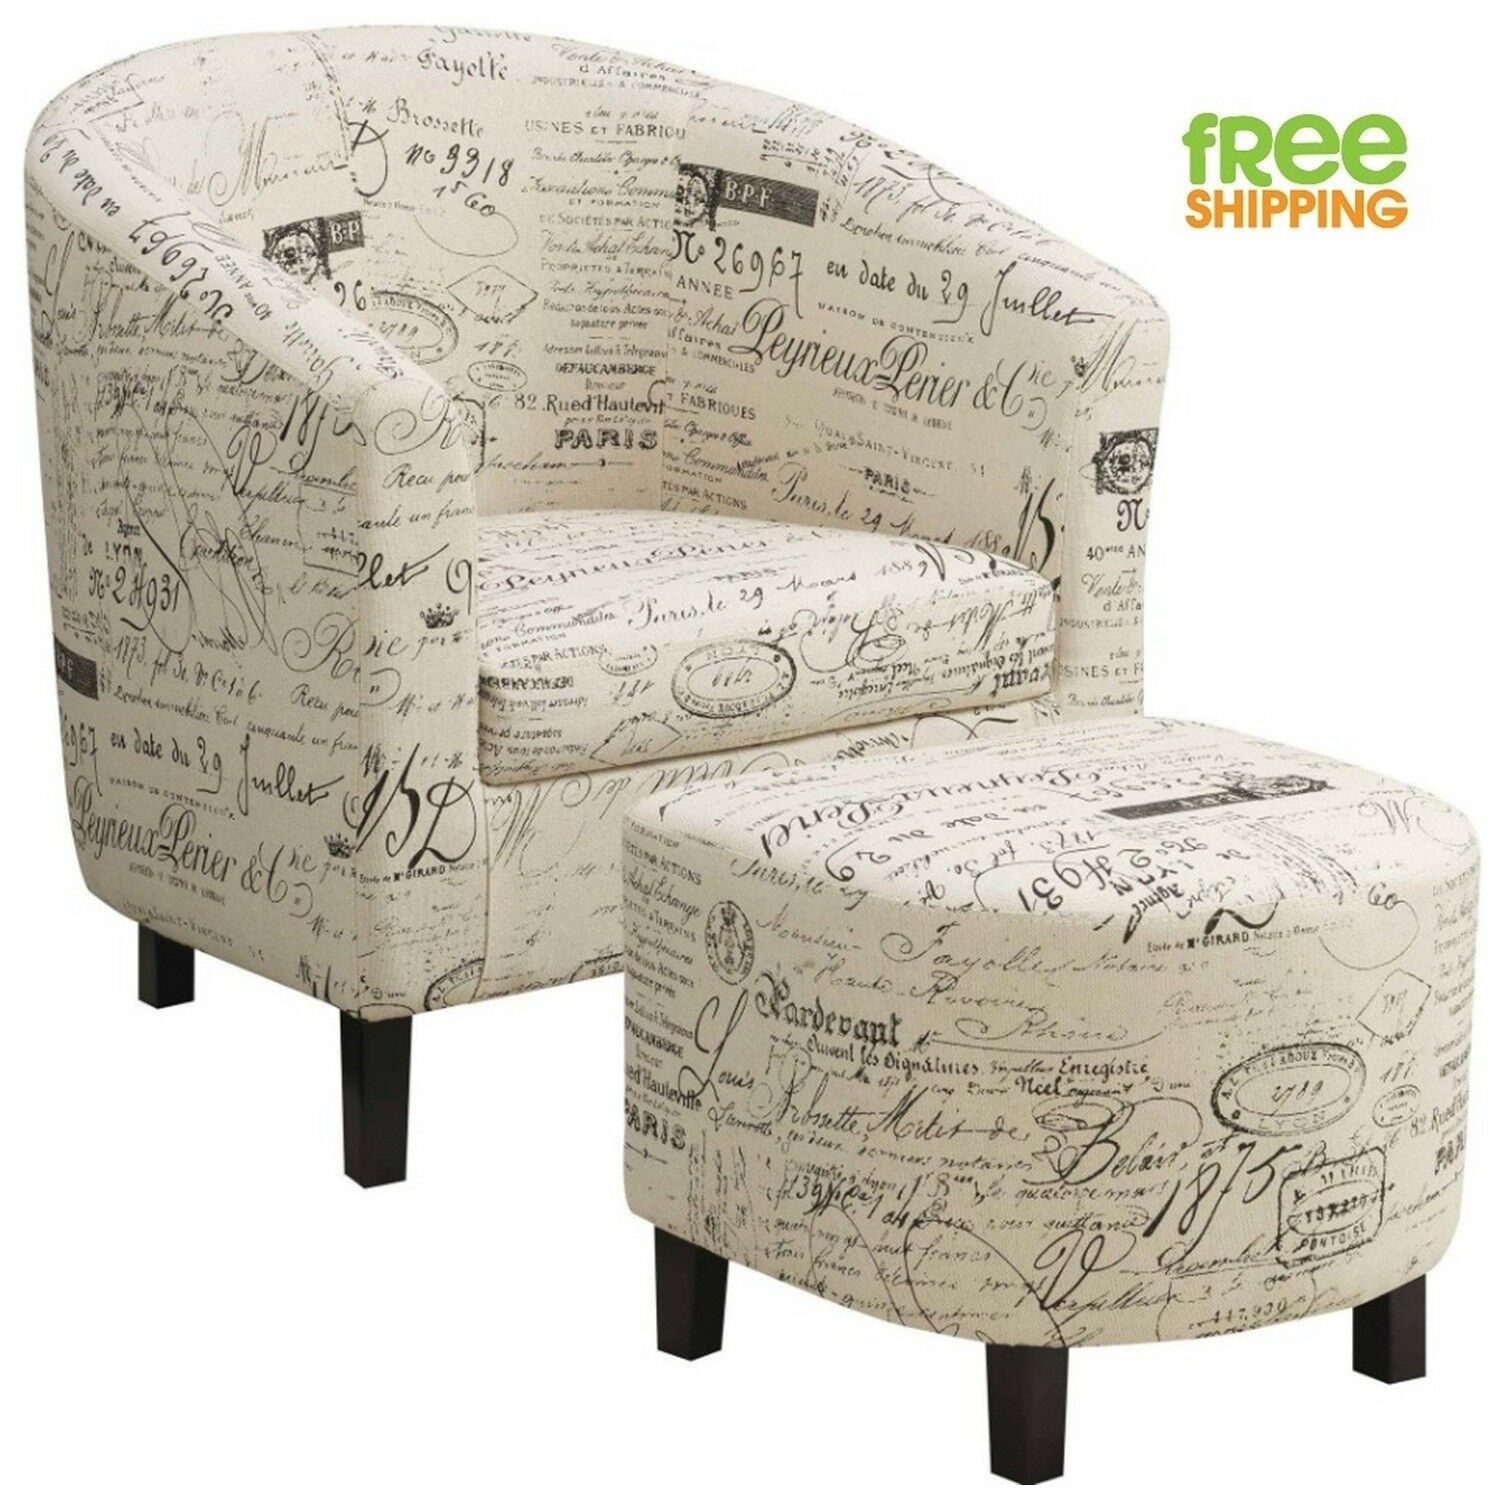 Sturdy Accent Chair Ottoman Set Off White French Script High Quality Vintage New Ebay In 2020 Chair And Ottoman Set Accent Chairs Fabric Accent Chair